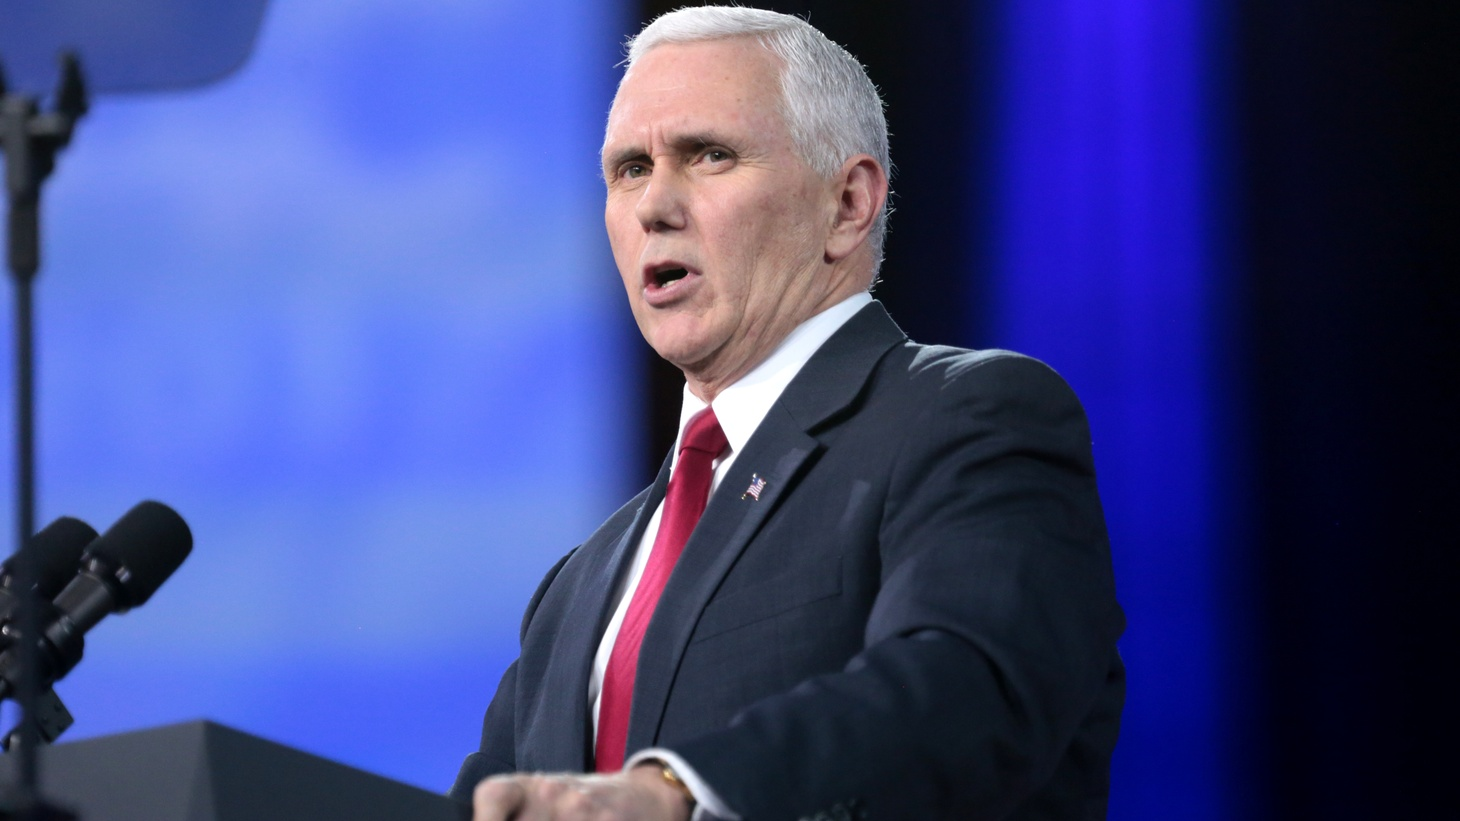 Vice President Mike Pence speaking at the 2017 Conservative Political Action Conference (CPAC) in National Harbor, Maryland.